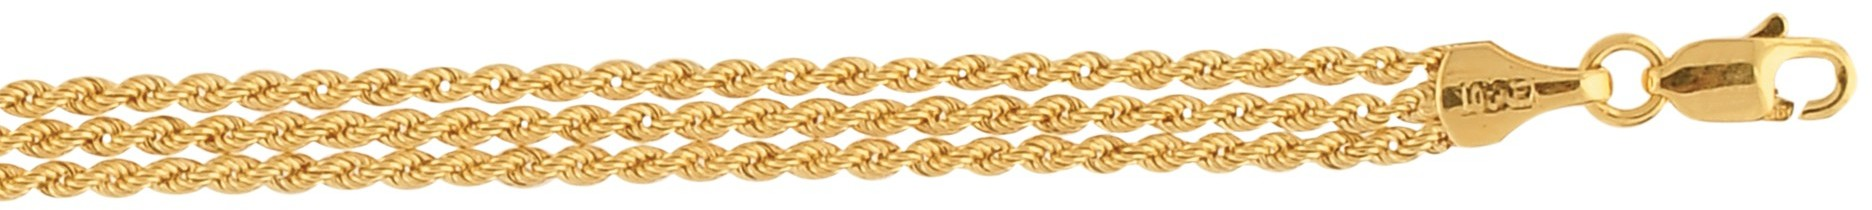 "7.25"" 10K Yellow Gold 1.65mm (0.06"") 3 Strand Rope Chain Ladies Fancy Bracelet w/ Lobster Clasp"